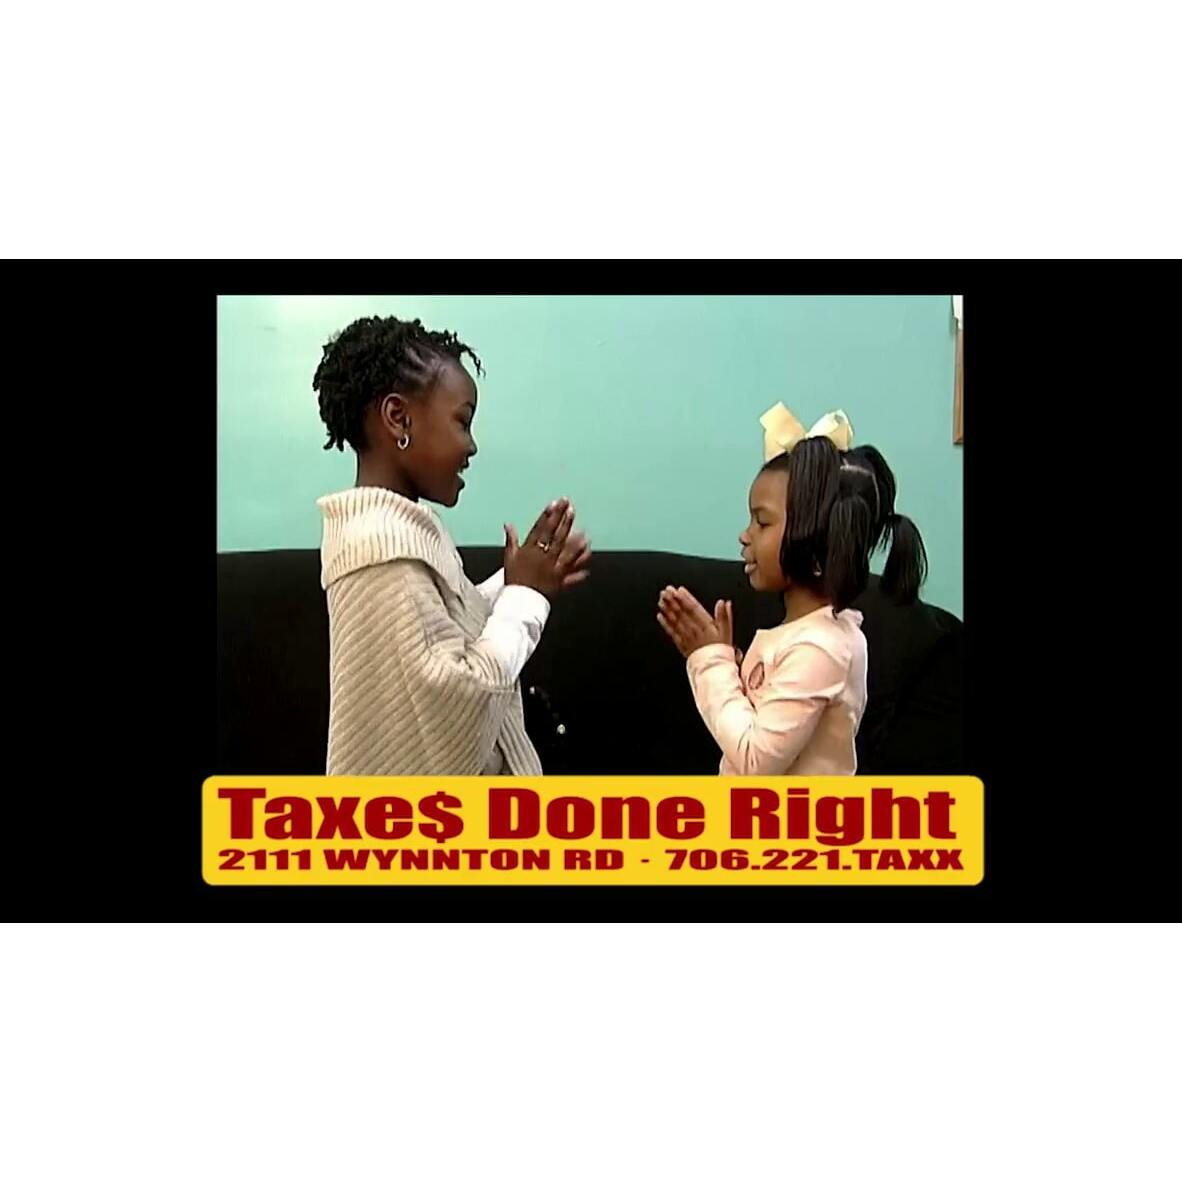 Taxes Done Right LLC